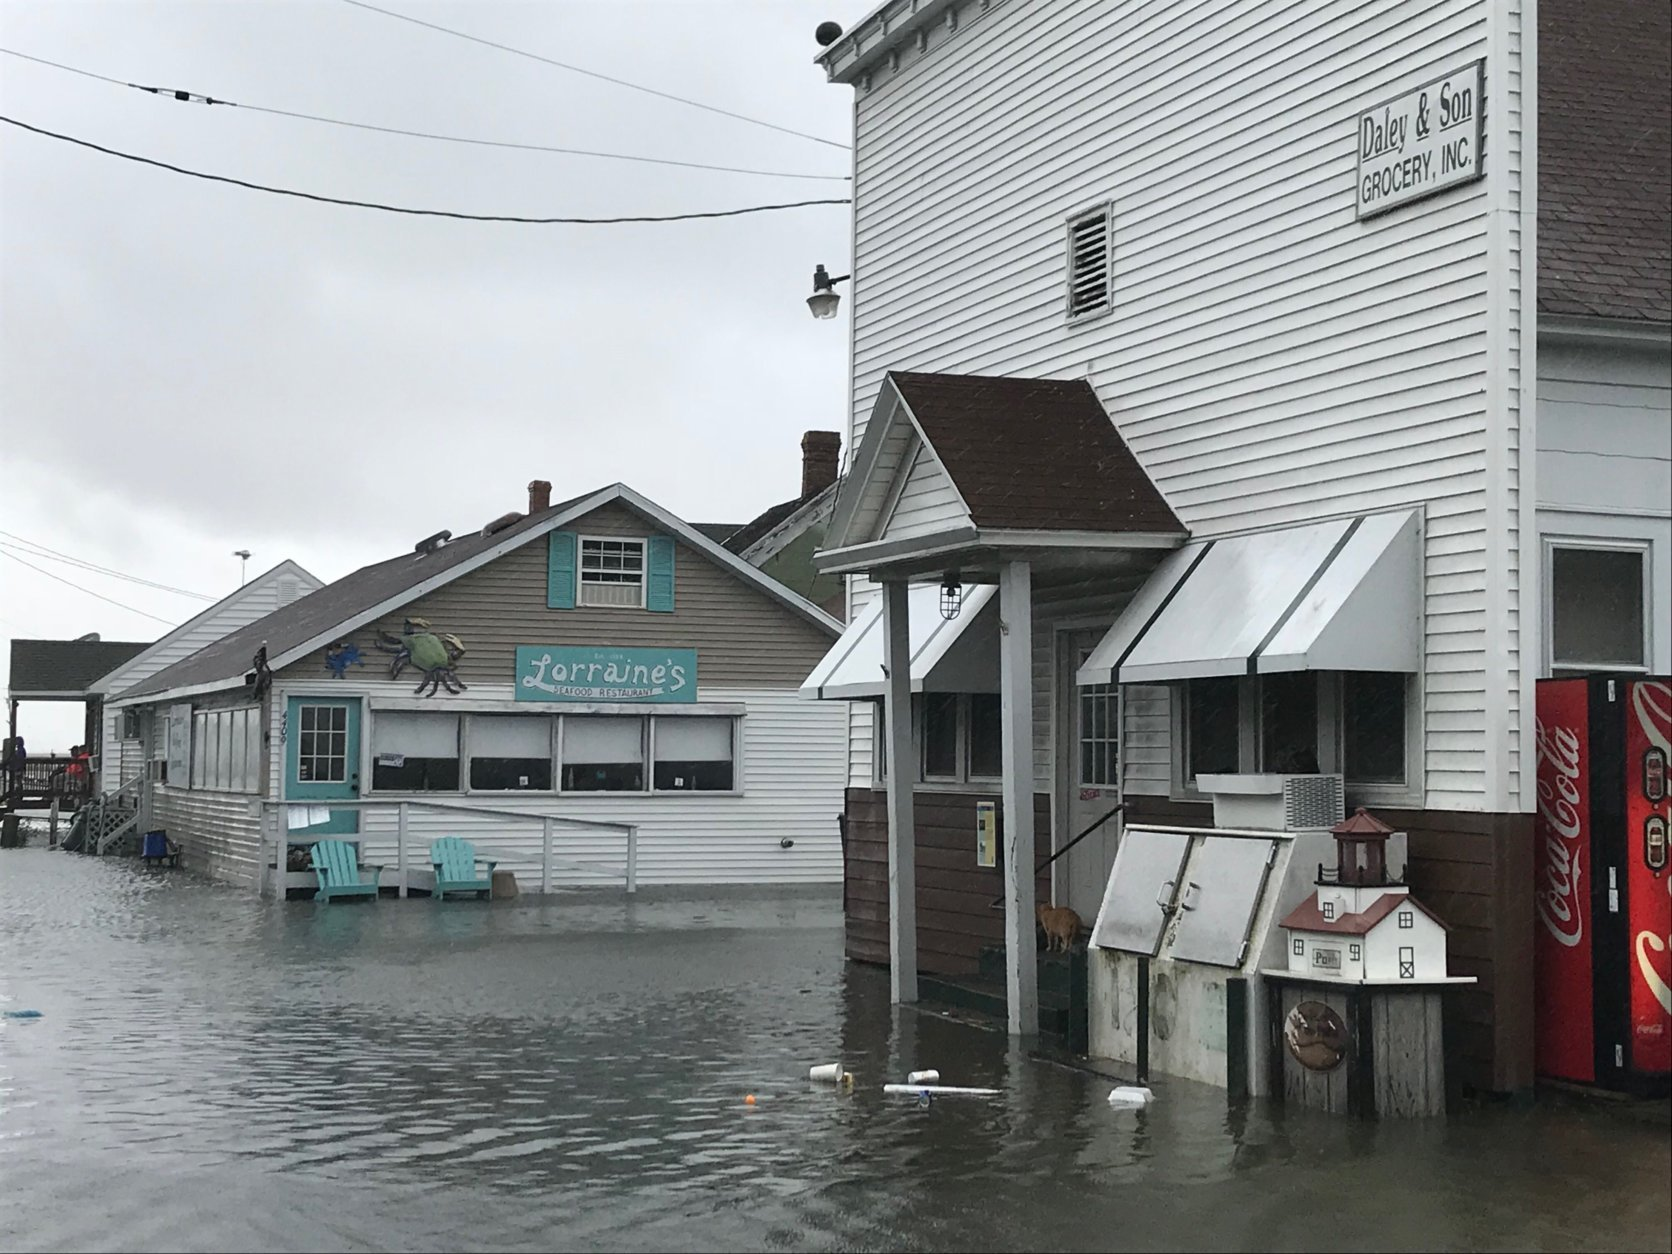 Flooding is not unusual on Tangier Island, which is only about 4 feet above sea level. Here, the front of a restaurant and a store are experiencing flooding on  Sunday, Sept. 9, 2018. (WTOP/Michelle Basch)